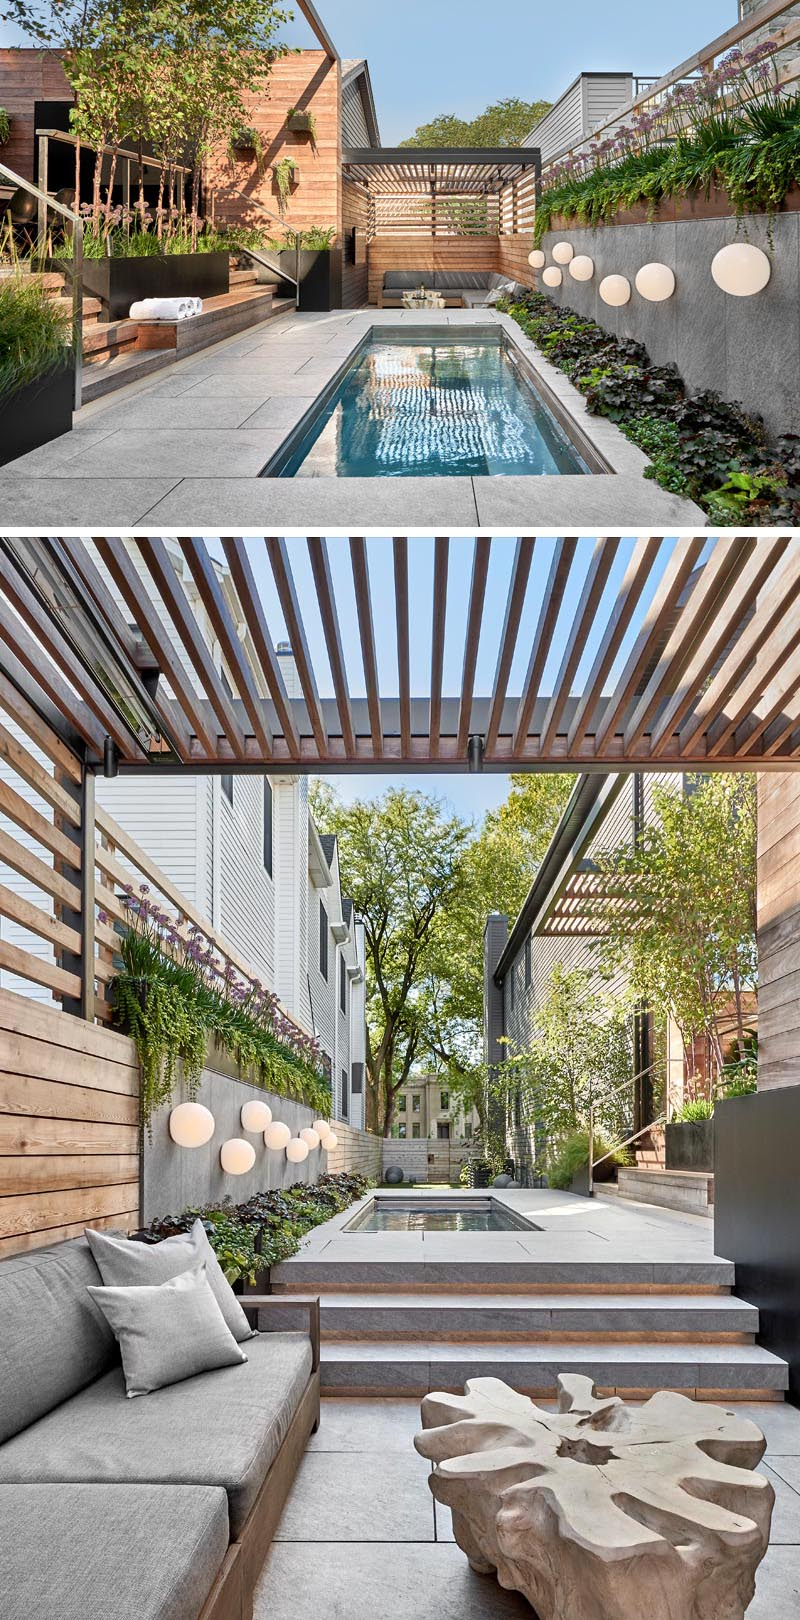 This modern outdoor space has a custom Diamond Spa and a lounge area. The spa measures in at 5' wide by 14' long by 4' deep, is heated year-round, and has an automatic cover to protect it when it's not being used. #OutdoorEntertaining #OutdoorSpa #Landscaping #OutdoorLounge